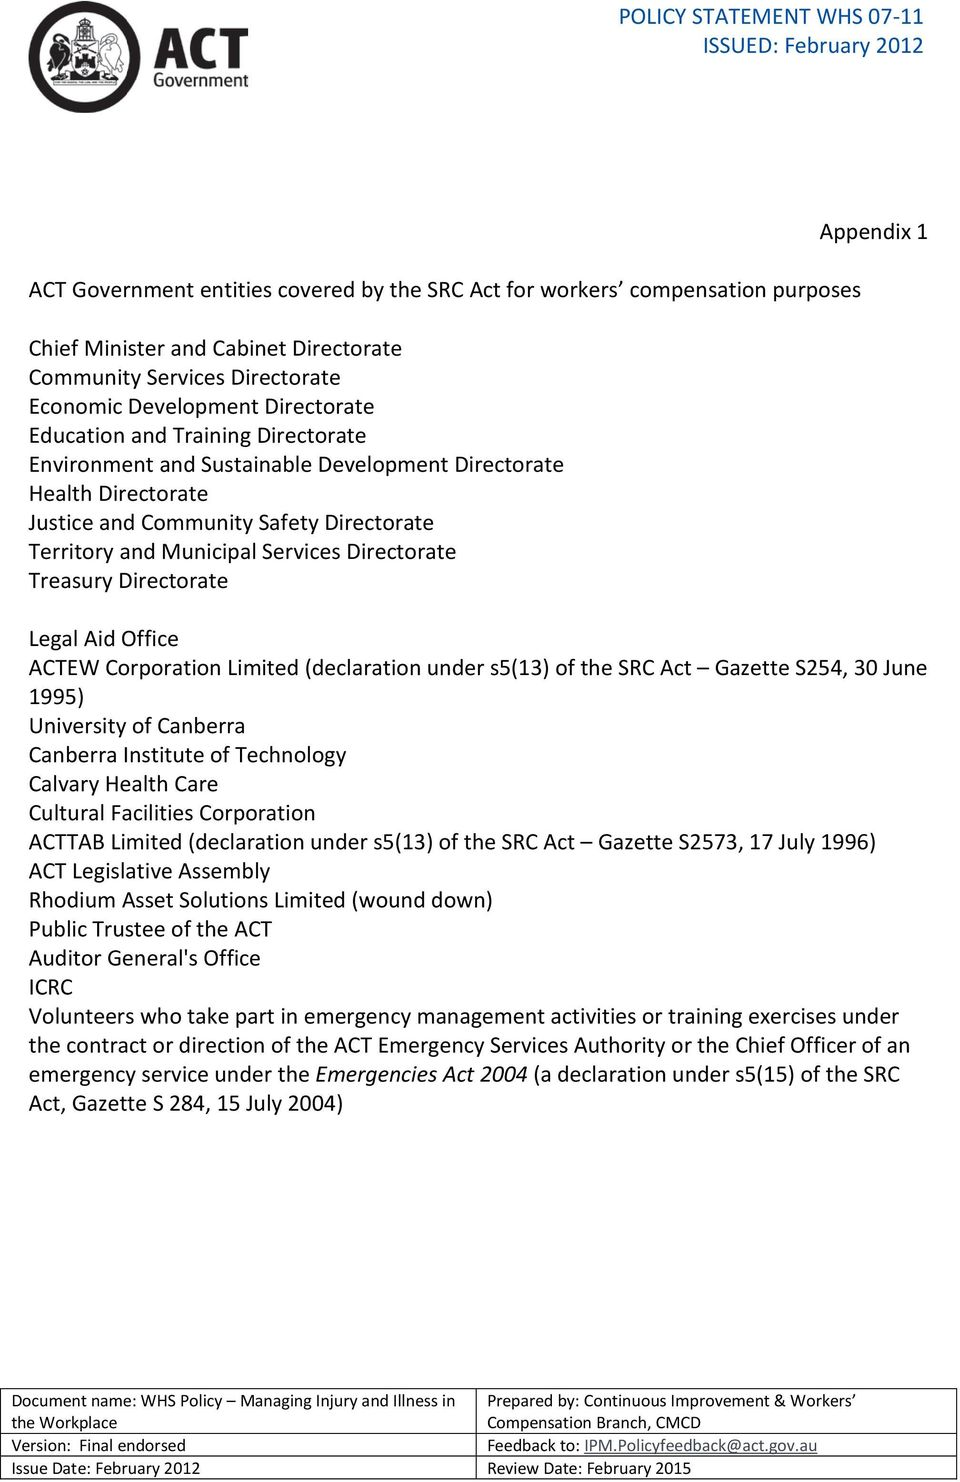 Appendix 1 Legal Aid Office ACTEW Corporation Limited (declaration under s5(13) of the SRC Act Gazette S254, 30 June 1995) University of Canberra Canberra Institute of Technology Calvary Health Care